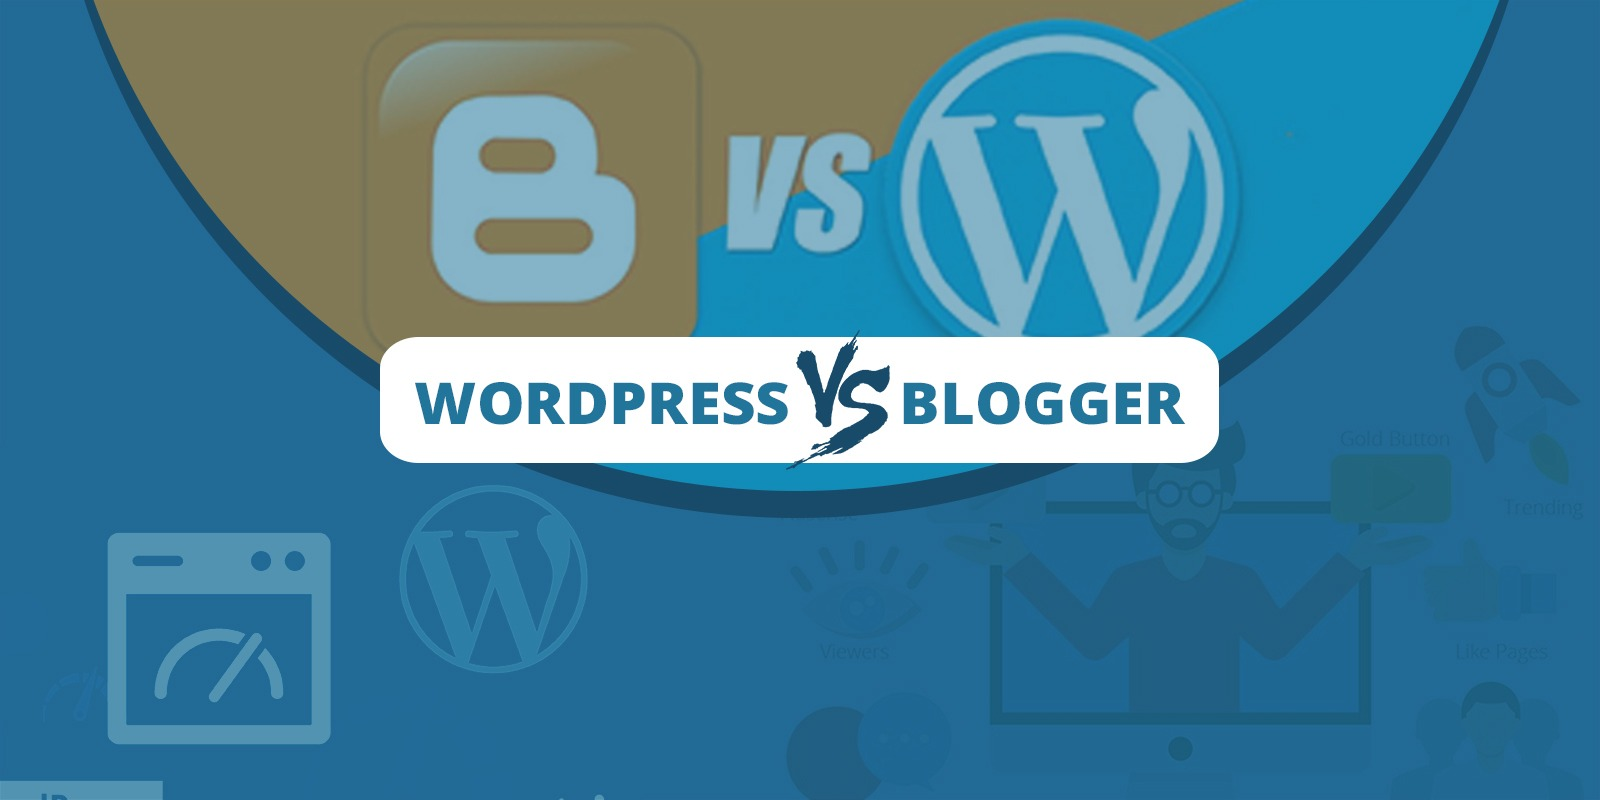 Worpress vs blogger